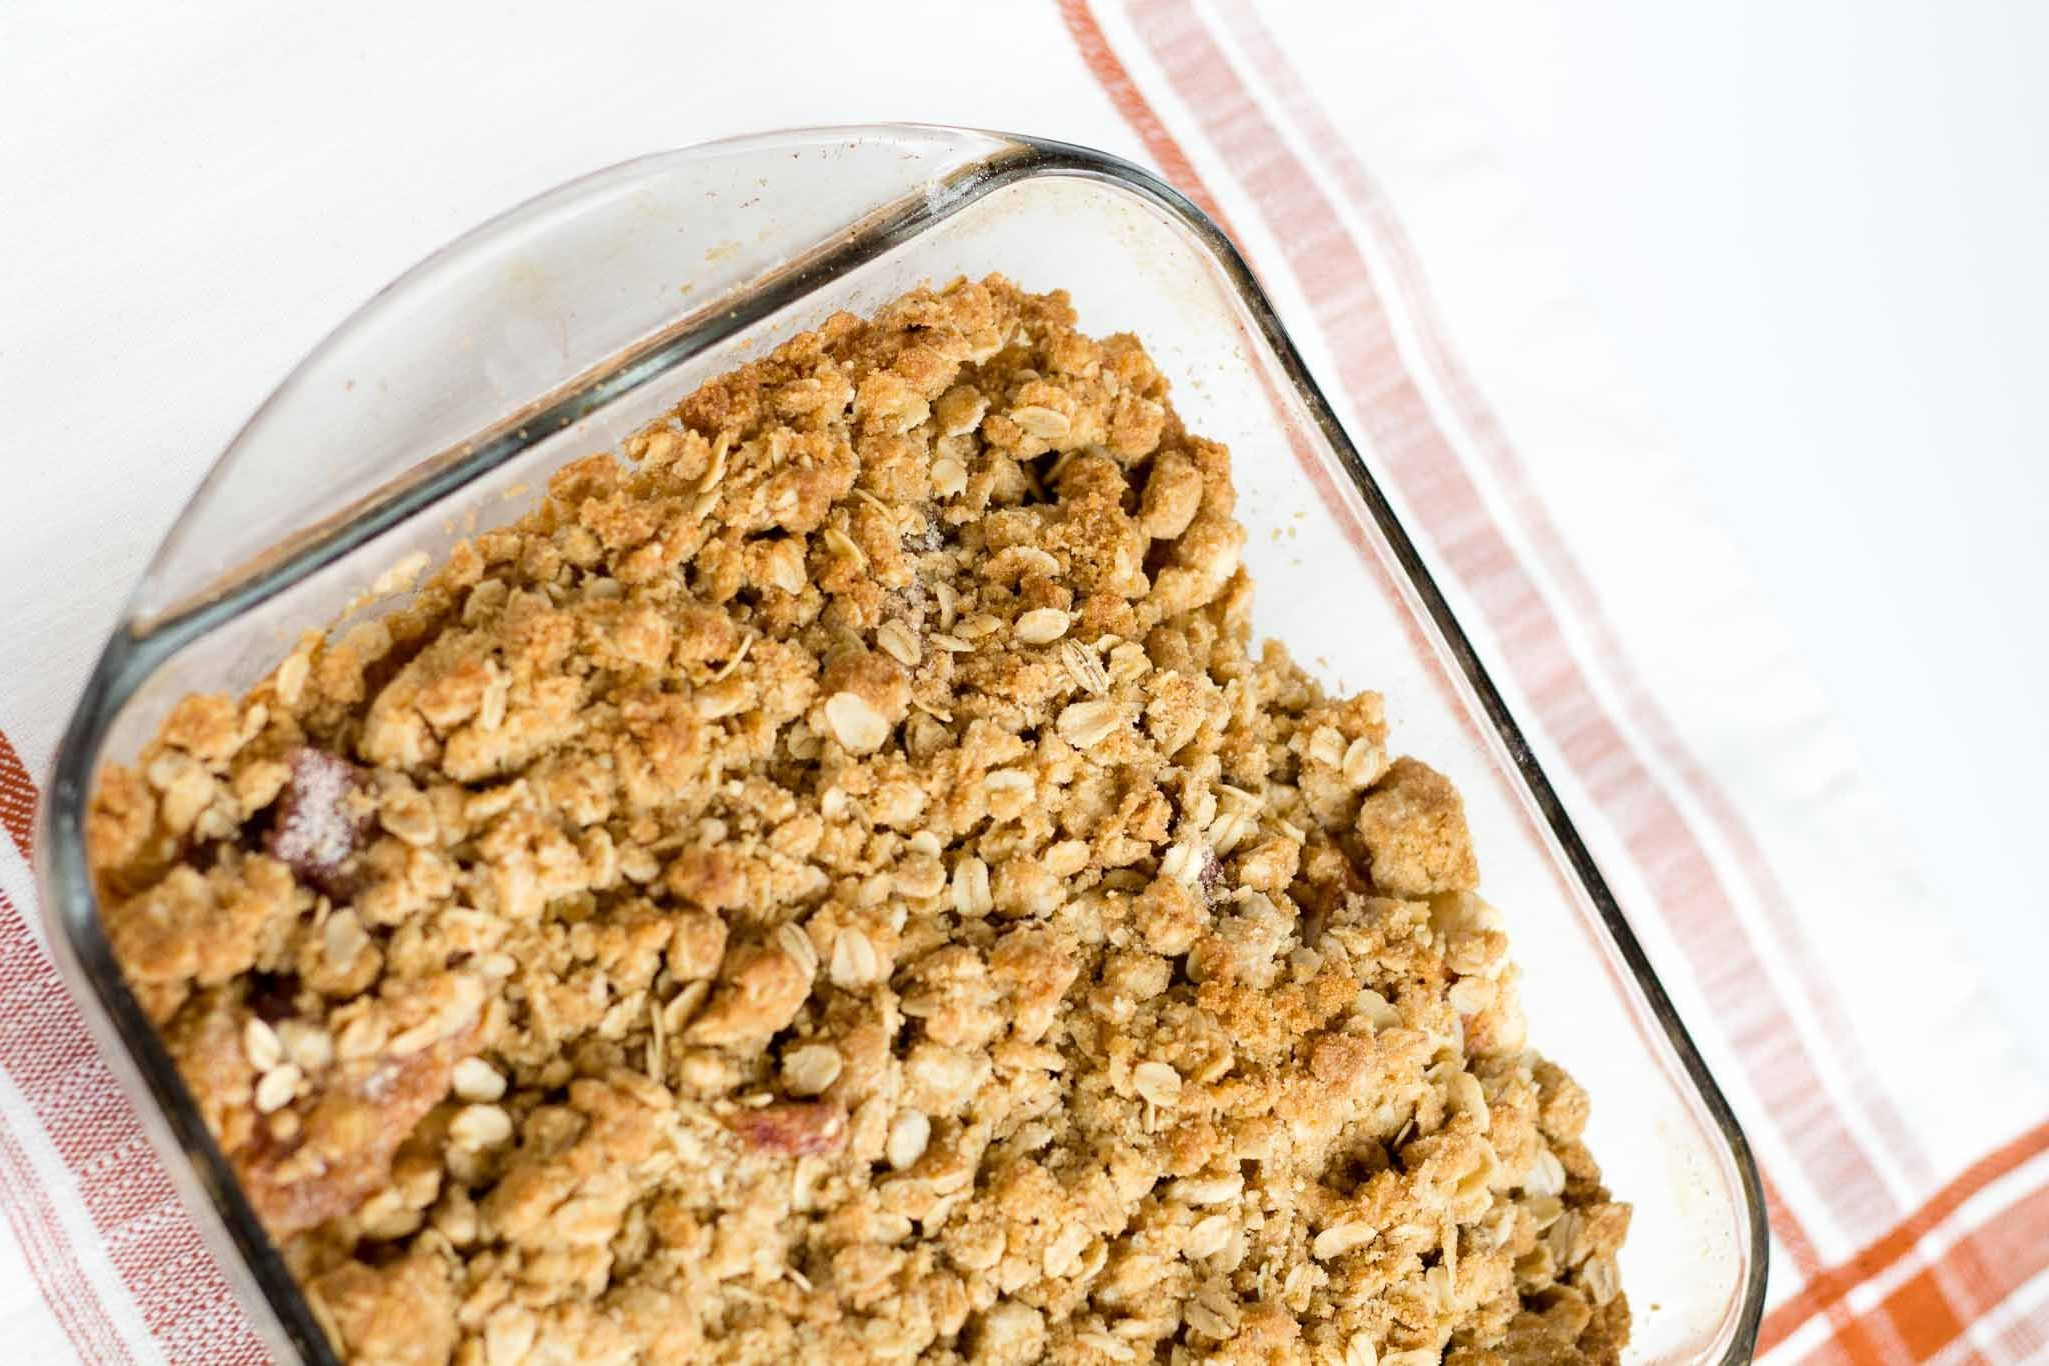 Easy oatmeal crumble topping recipe